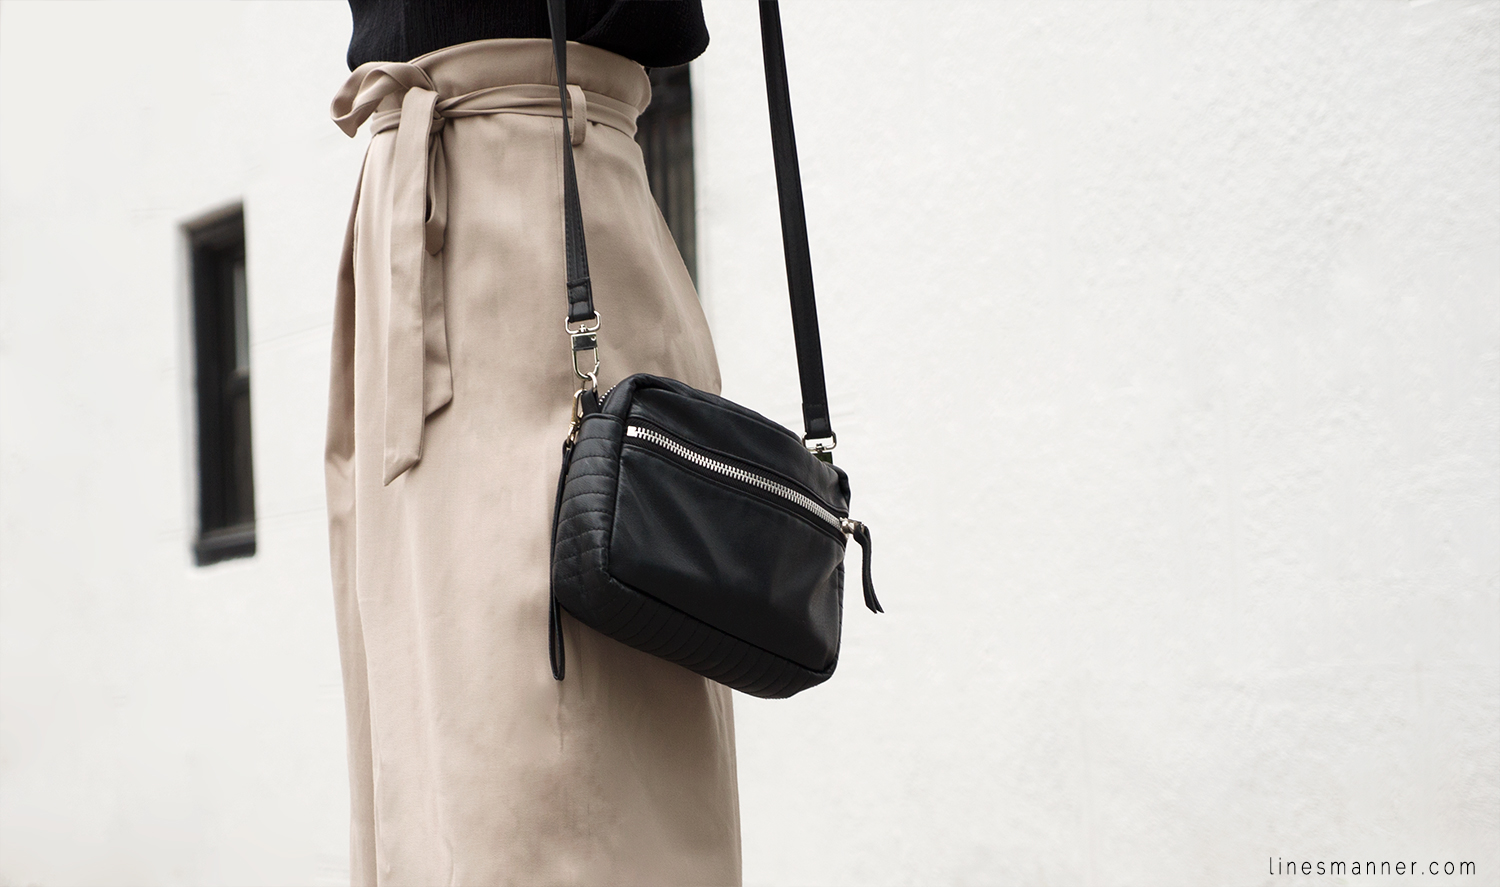 Lines-Manner-Neutrals-Quality-Lora_Gene-Wide_Leg_Pant-Modern-Sophistication-Tailored-Essentials-Details-Simplicity-Summer_vibes-Volume-Proportion-Flowy-8